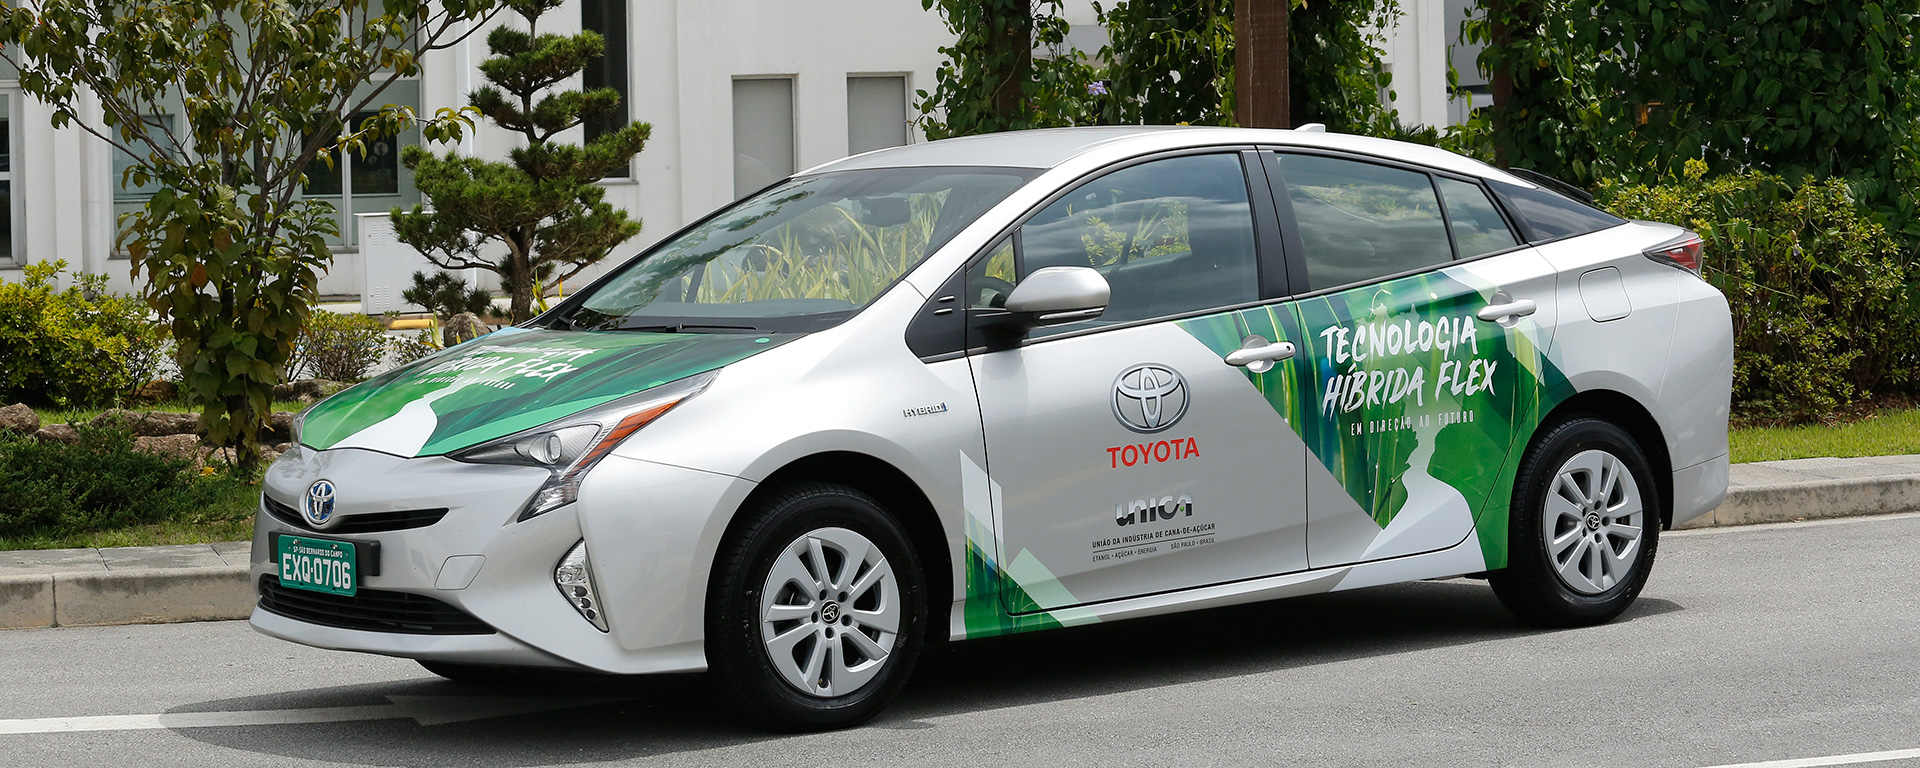 Toyota Reveals World-First Flexible Fuel Hybrid Prototype in Brazil ...